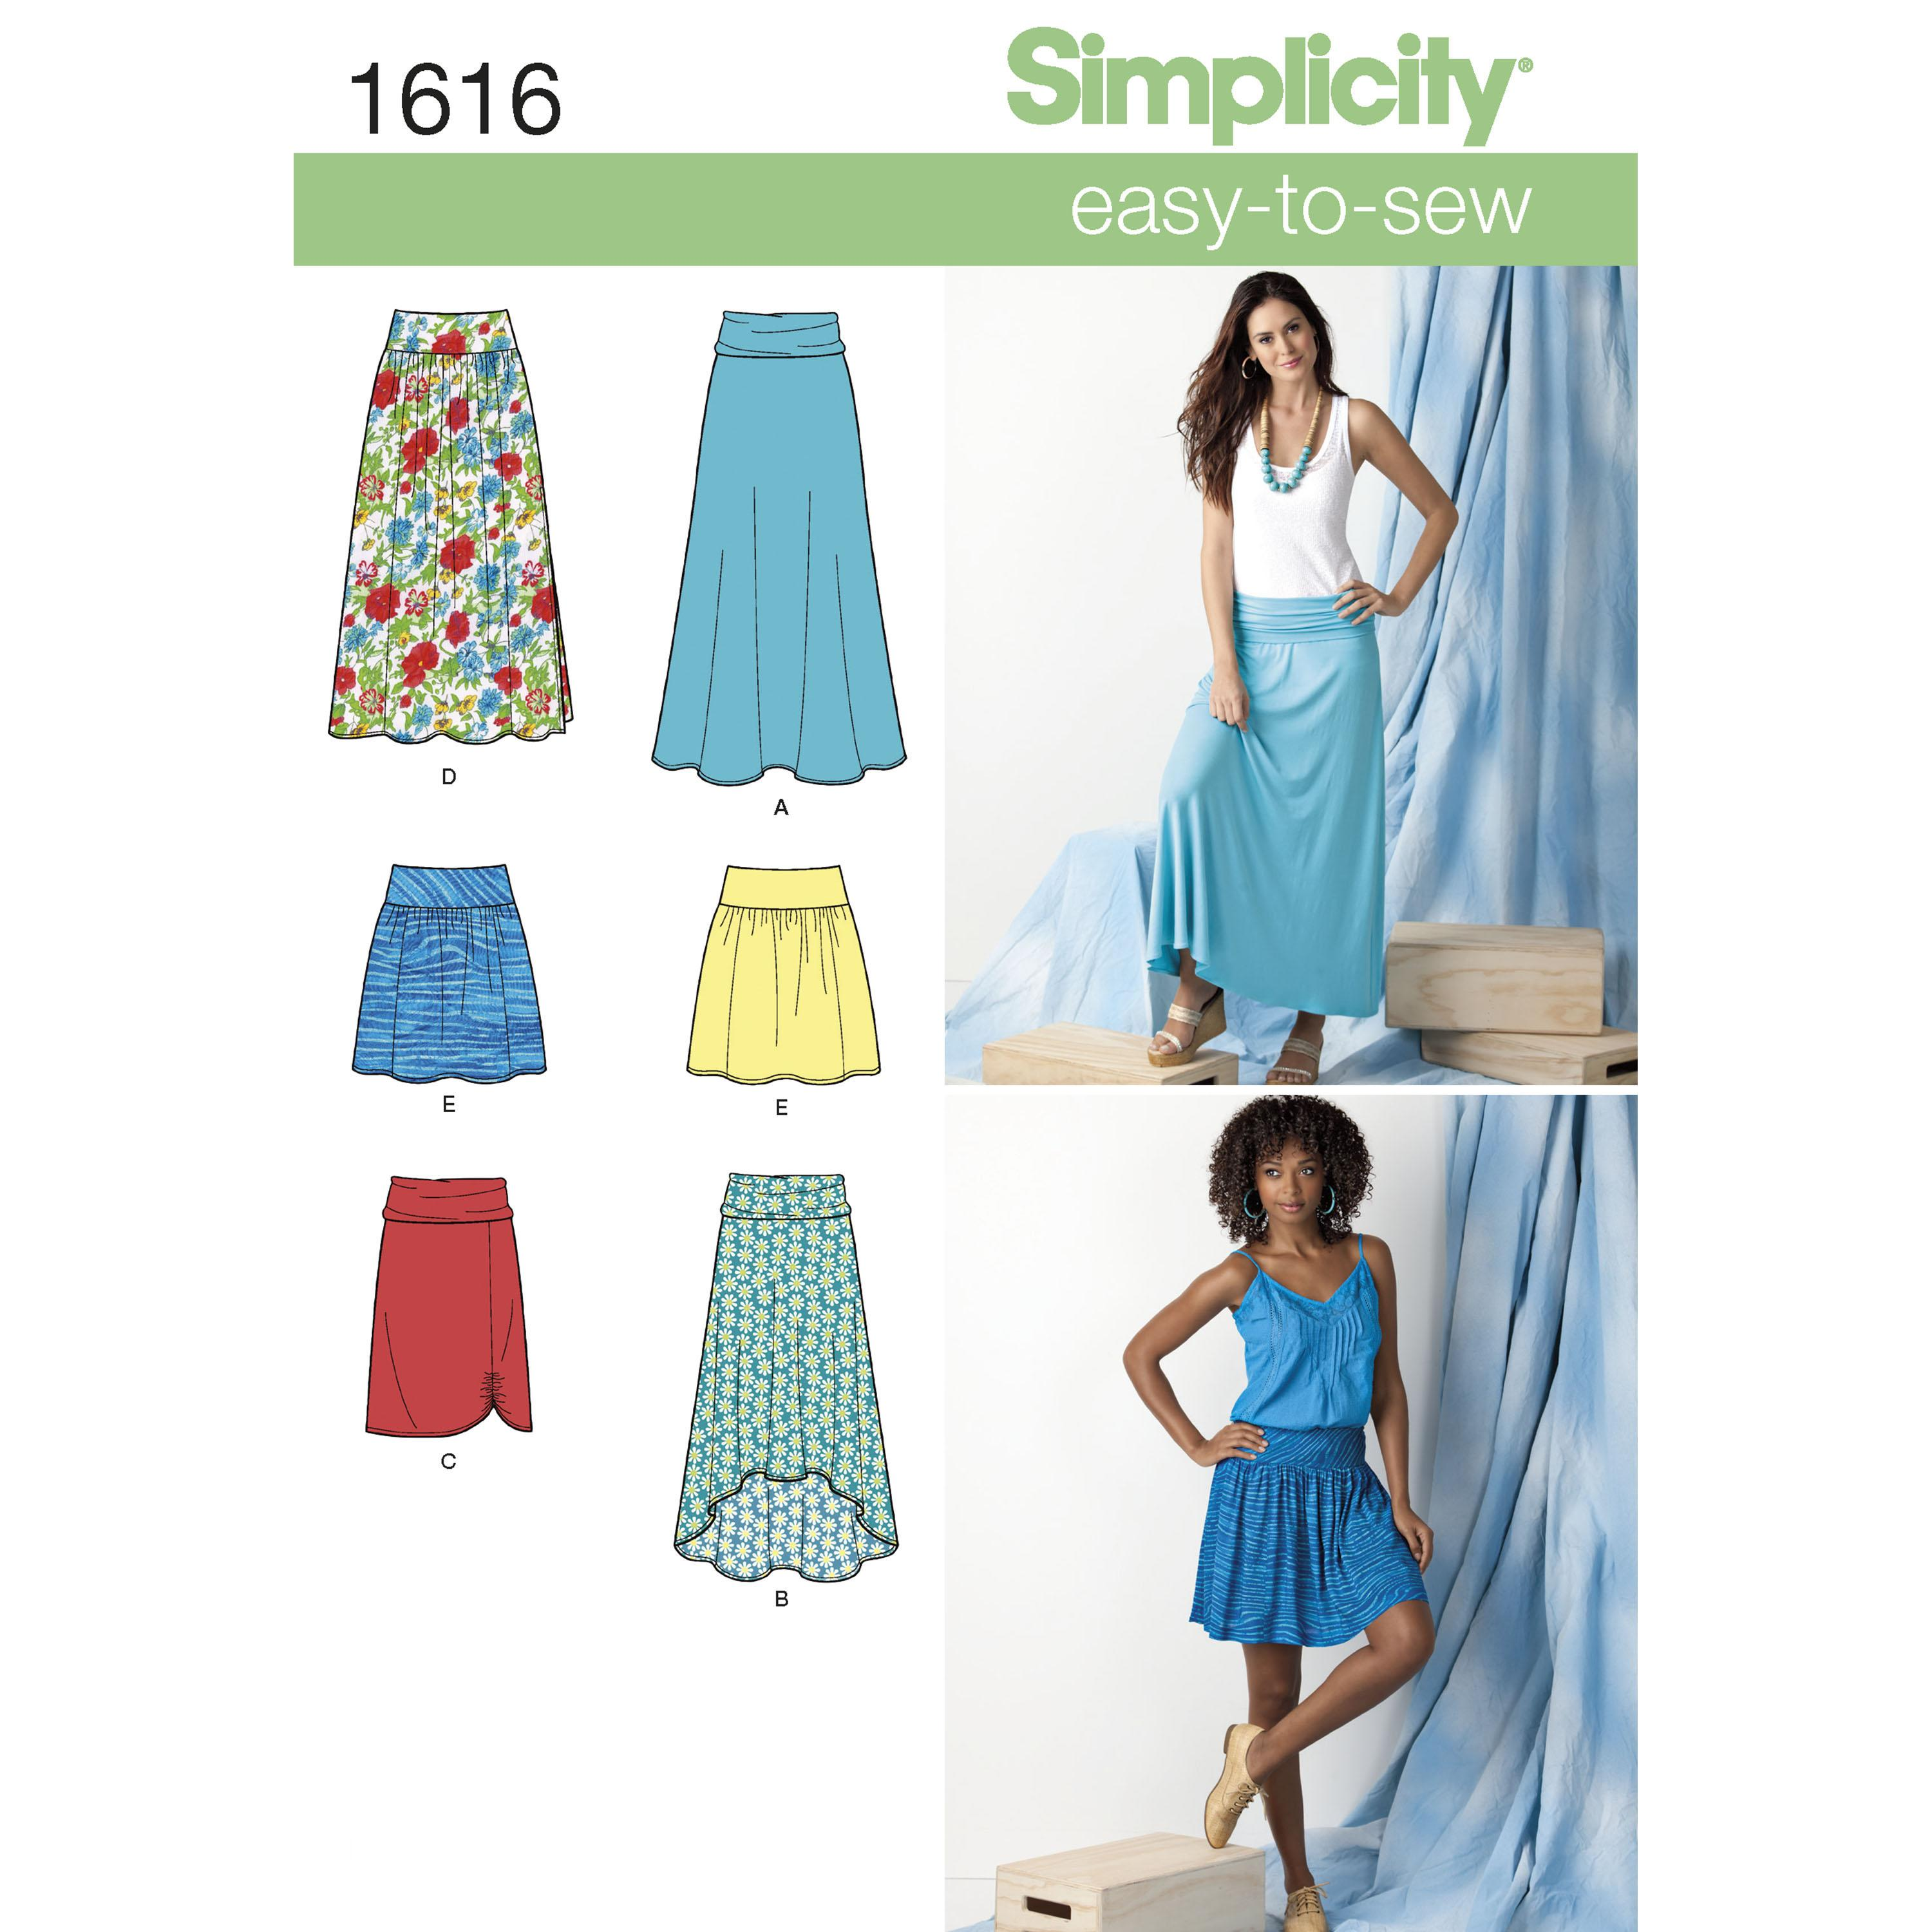 Simplicity S1616 Women's Knit or Woven Skirts